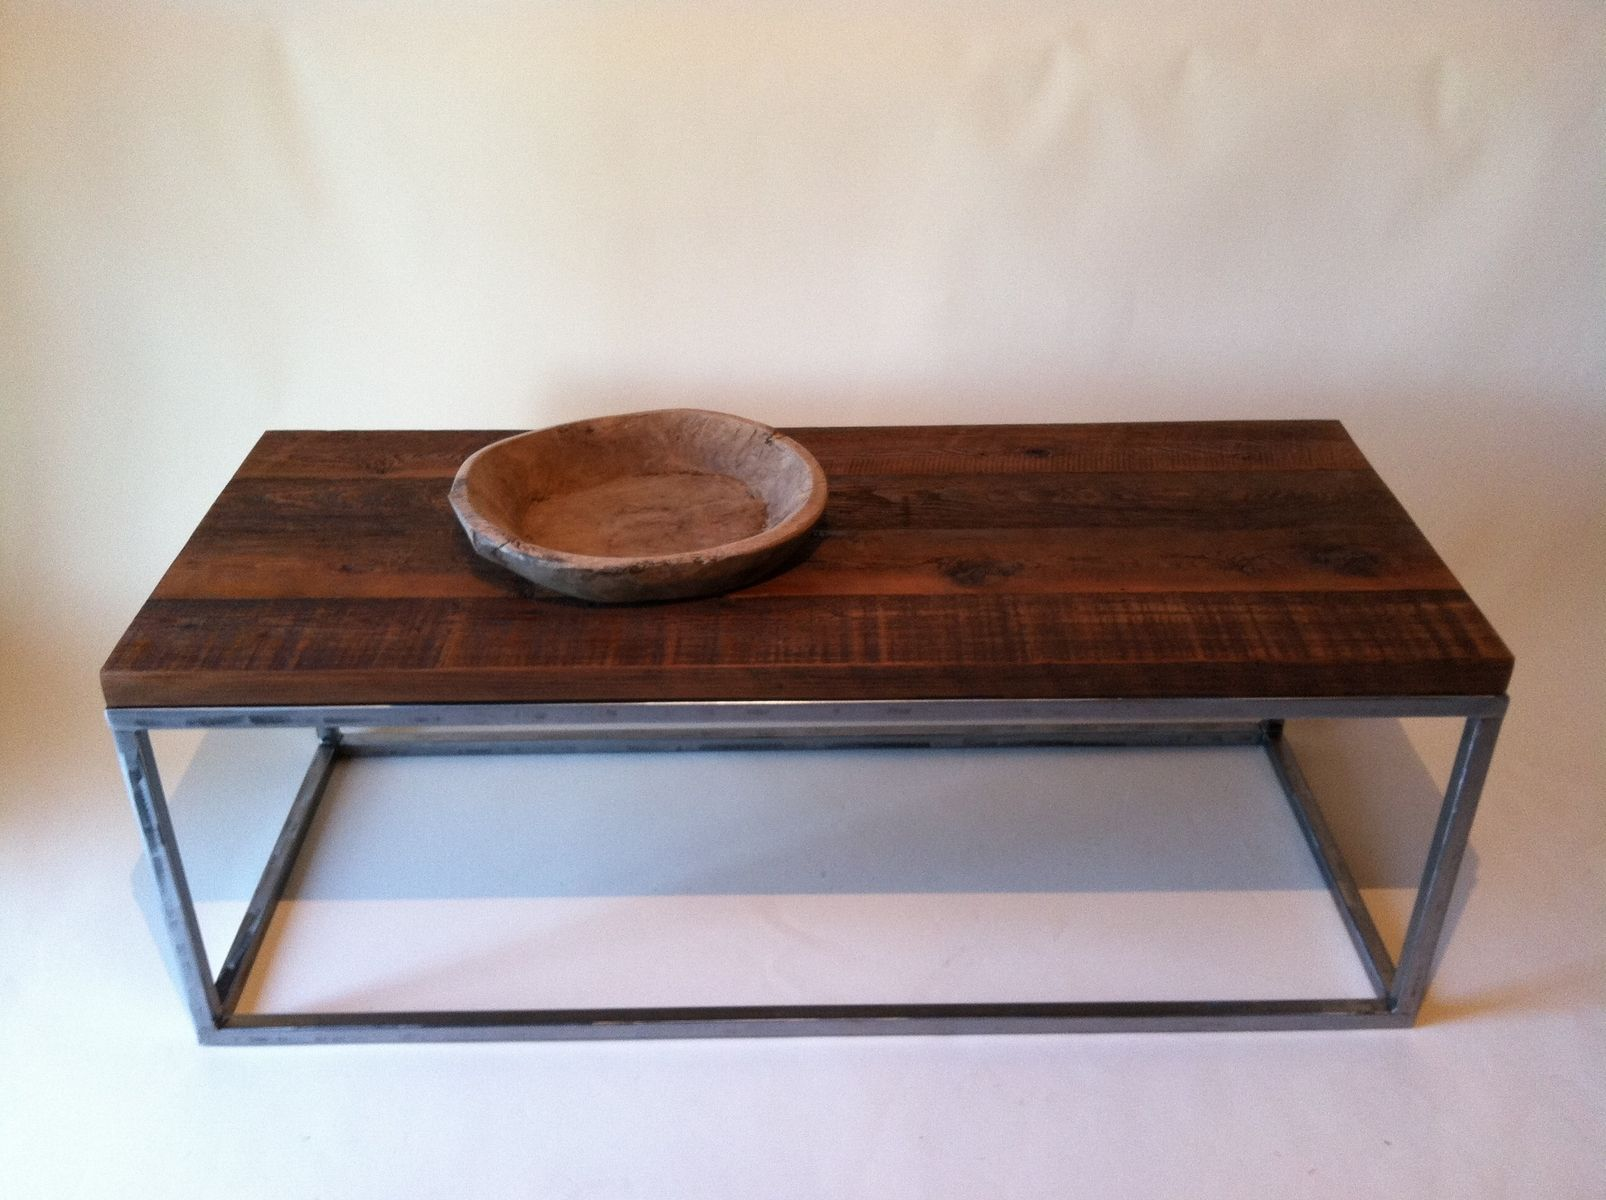 Reclaimed Wood Coffee Tables With Rectagular Polished Metal Base Coffee Table Wood Reclaimed Wood Coffee Table Cherry Wood Coffee Table [ 1200 x 1606 Pixel ]